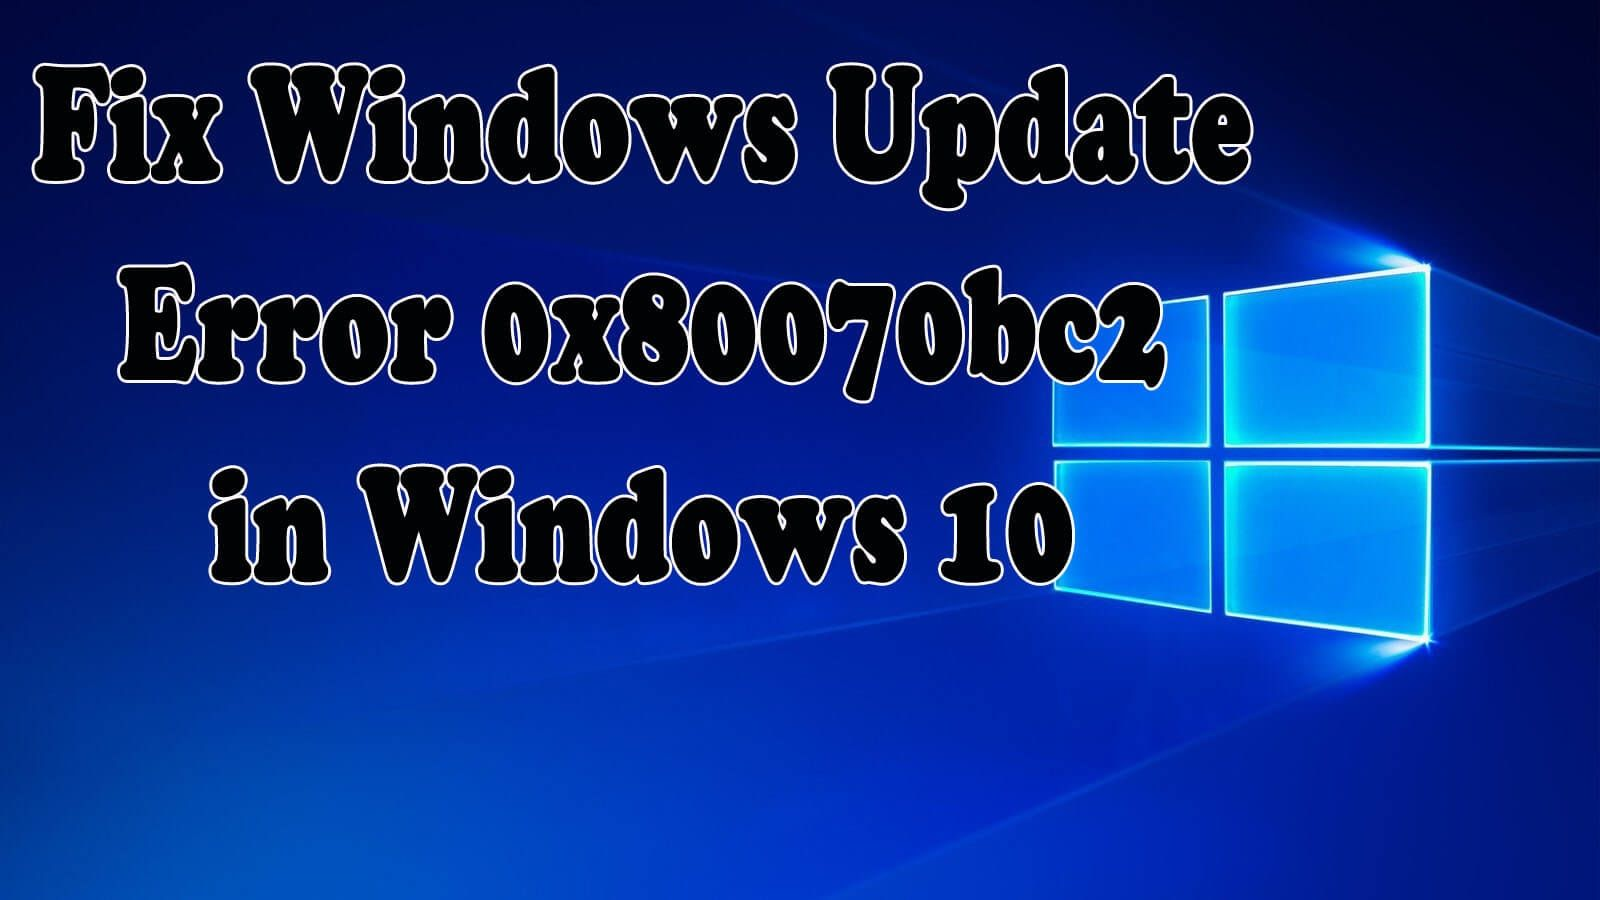 Fix Windows Update Error 0x80070bc2 on Acer Laptop